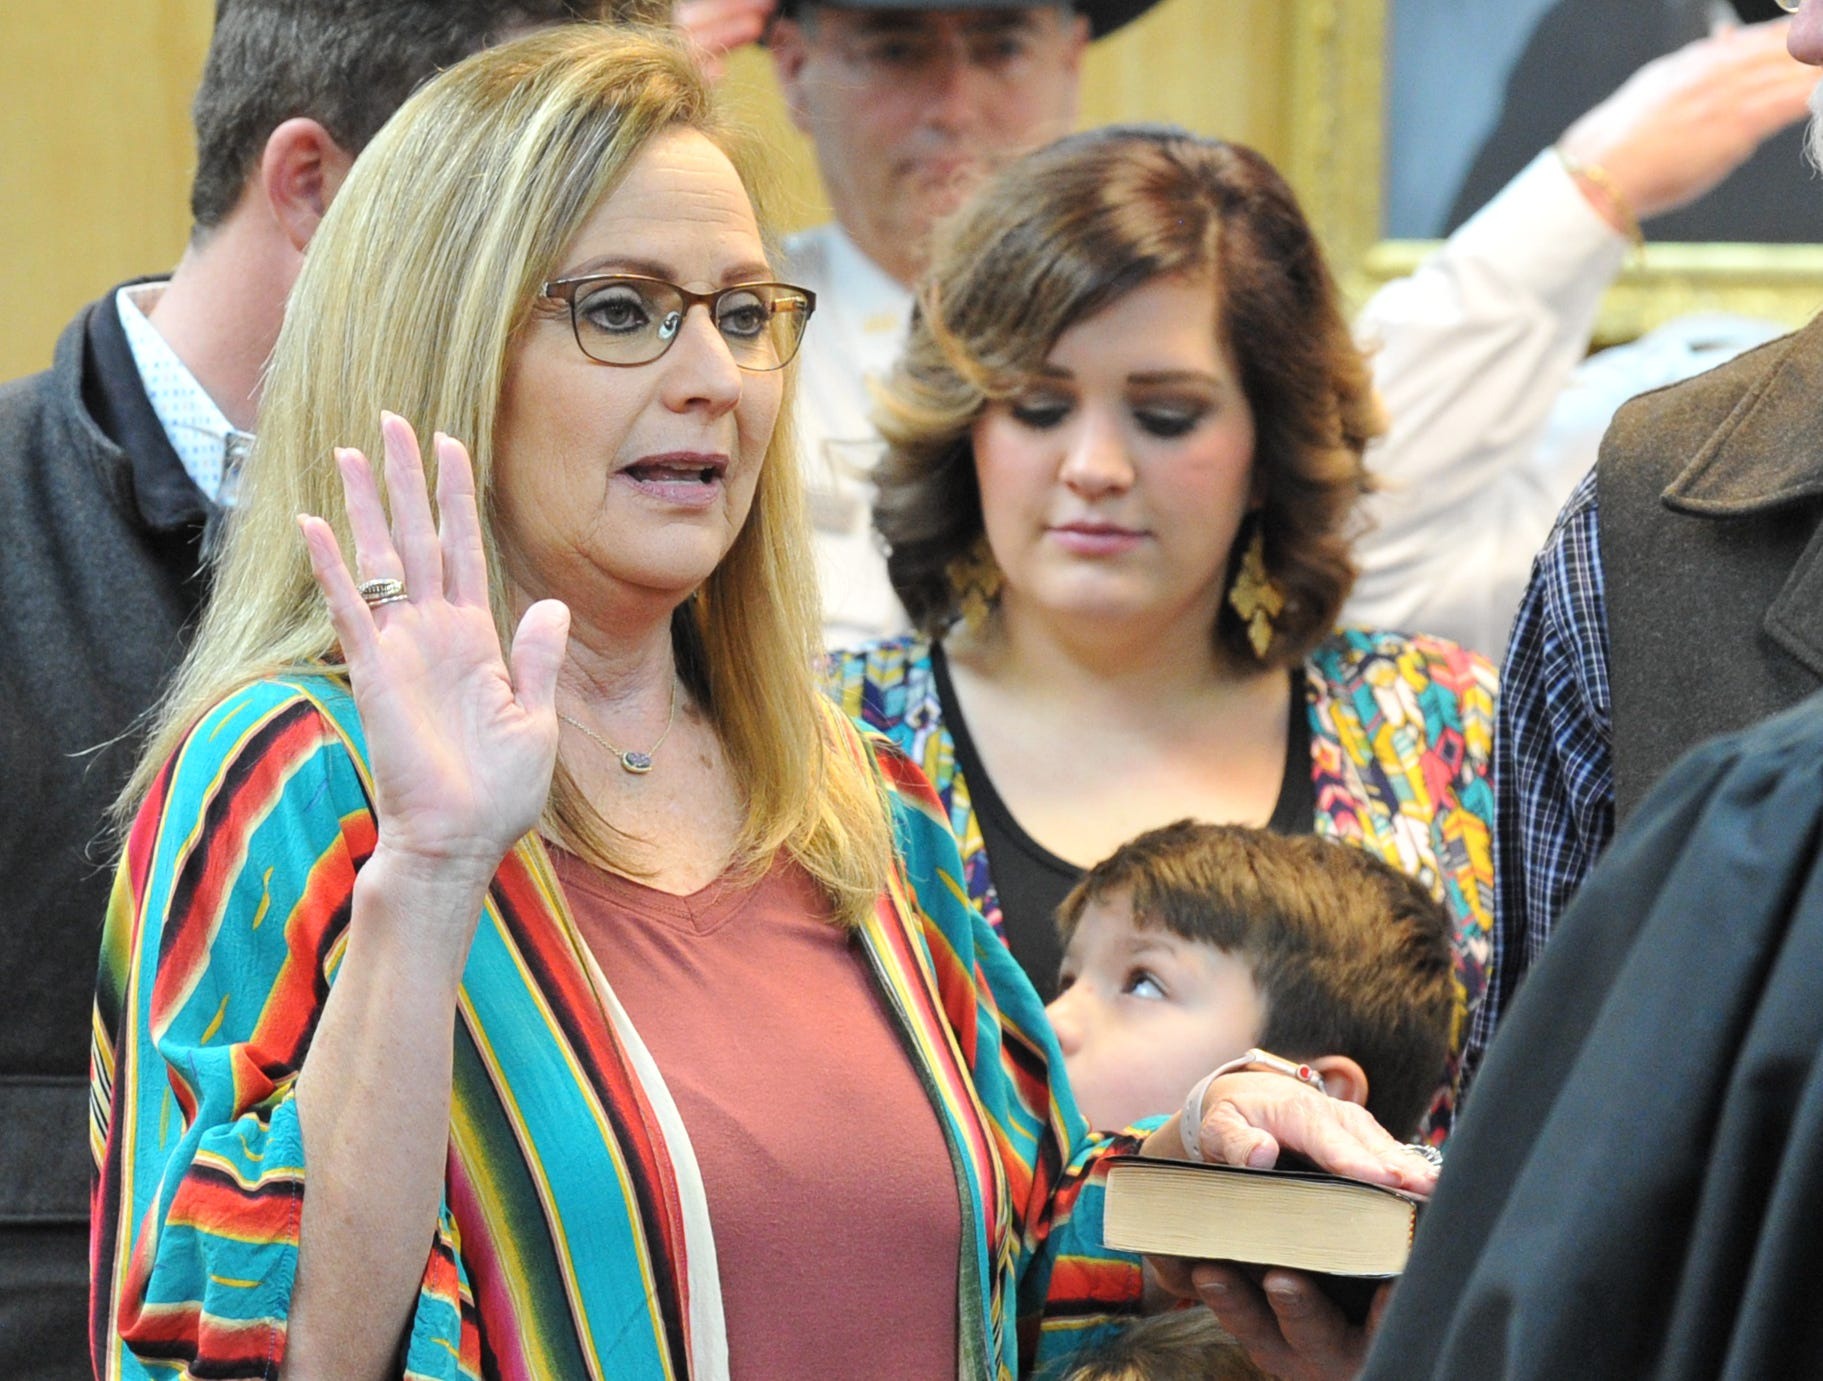 County Clerk Lori Bohannon was sworn in during a ceremony held in the 30th district courtroom, Tuesday morning.